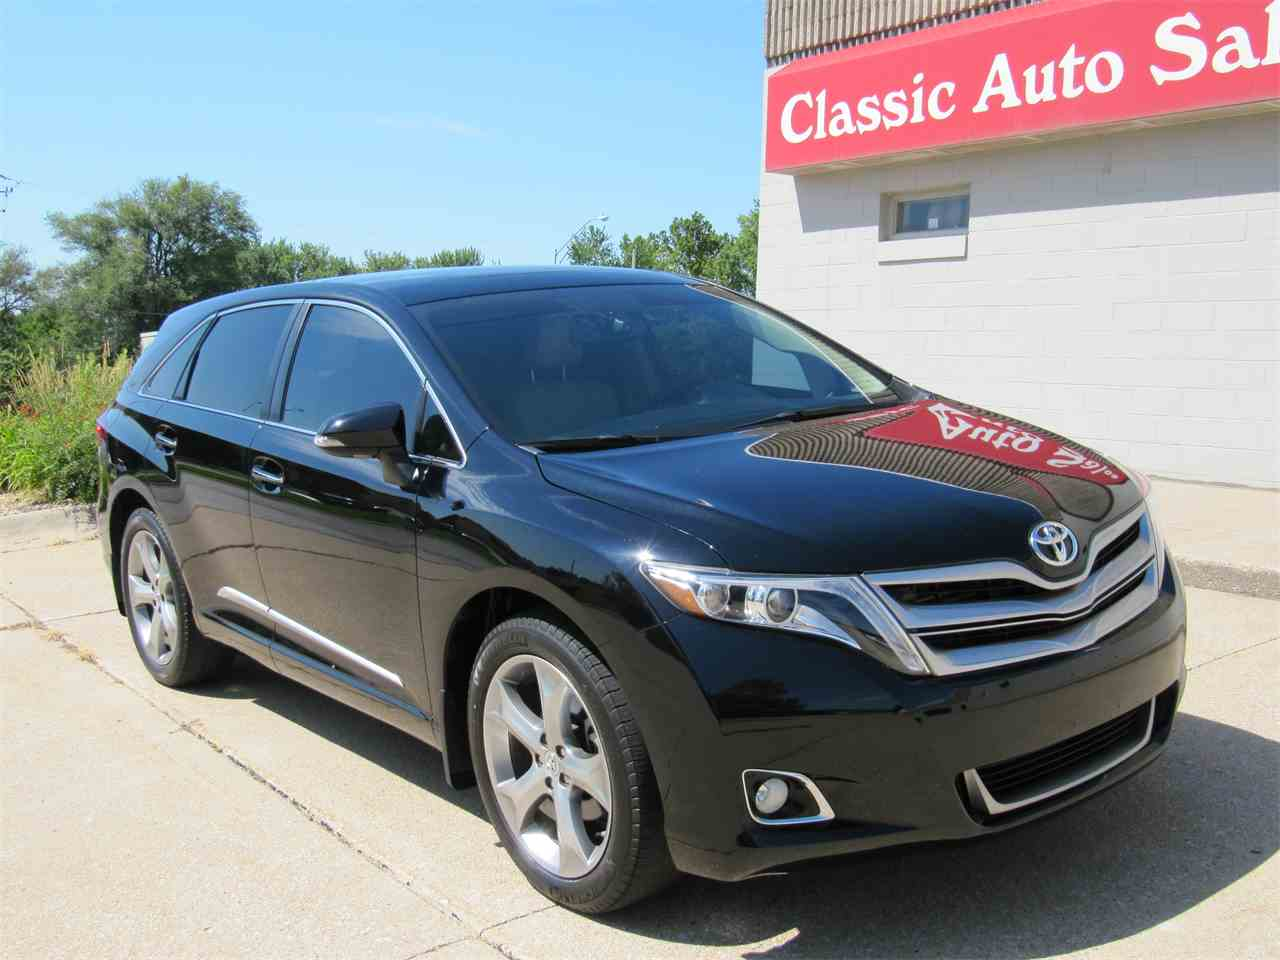 Large Picture of '13 Venza located in Nebraska - $21,900.00 Offered by Classic Auto Sales - KYK2